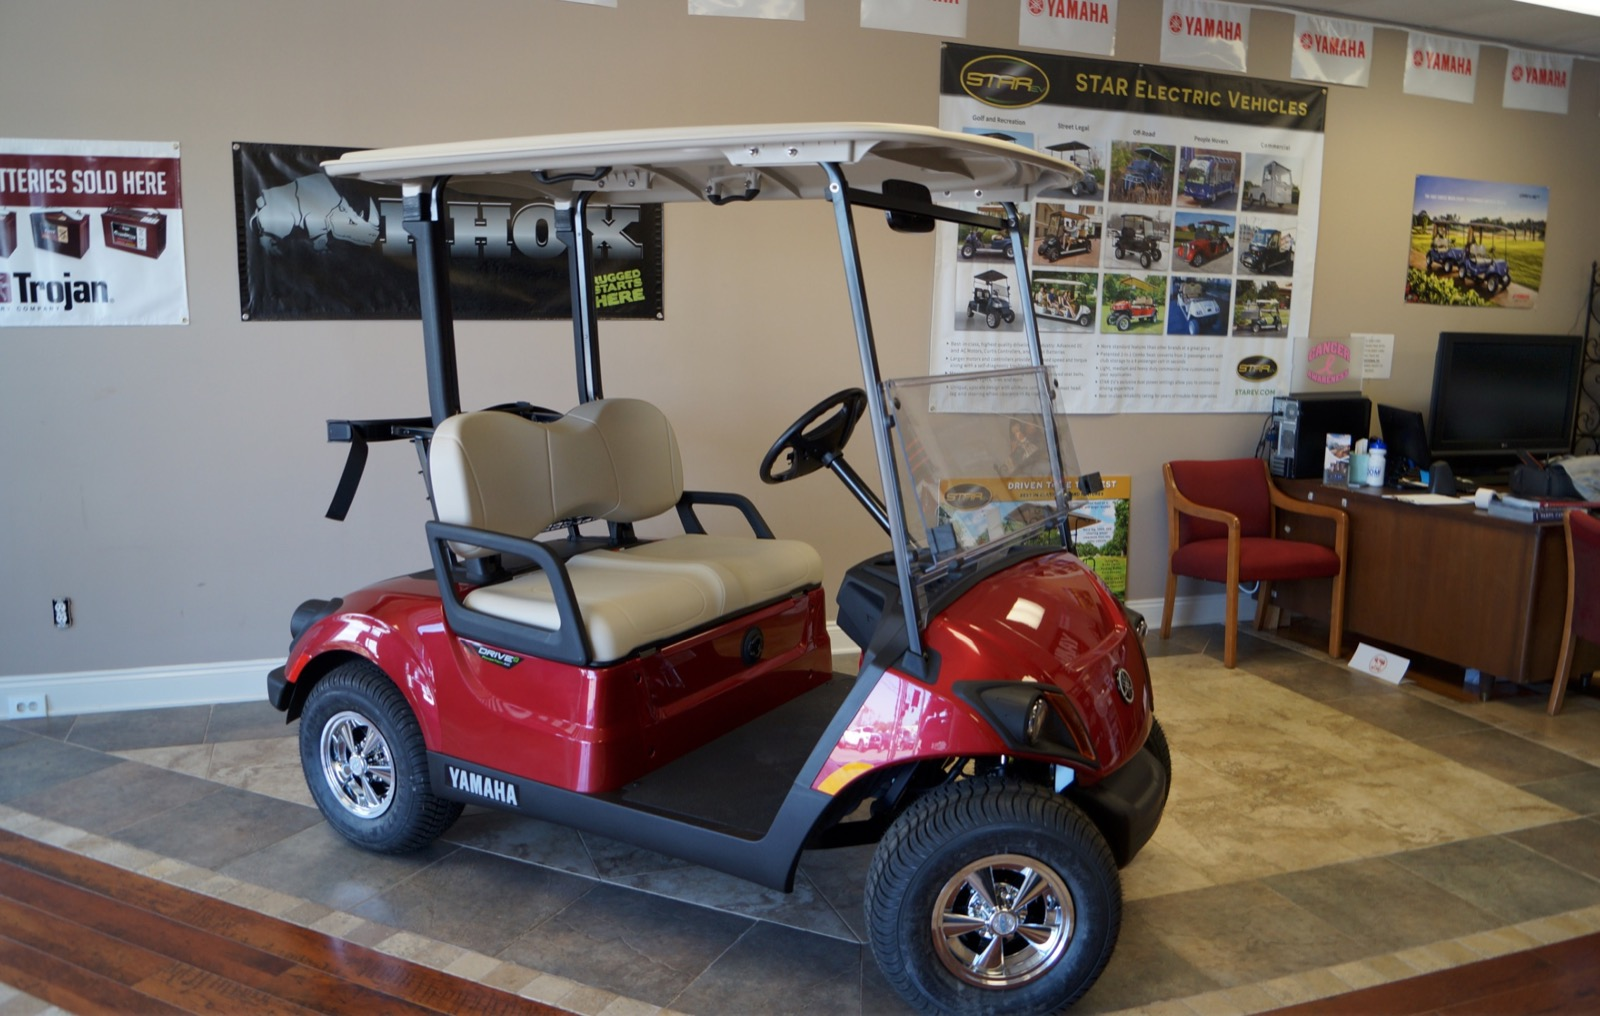 ... Yamaha Electric Golf Cart on yamaha street legal golf carts, yamaha g9 golf  cart, ...